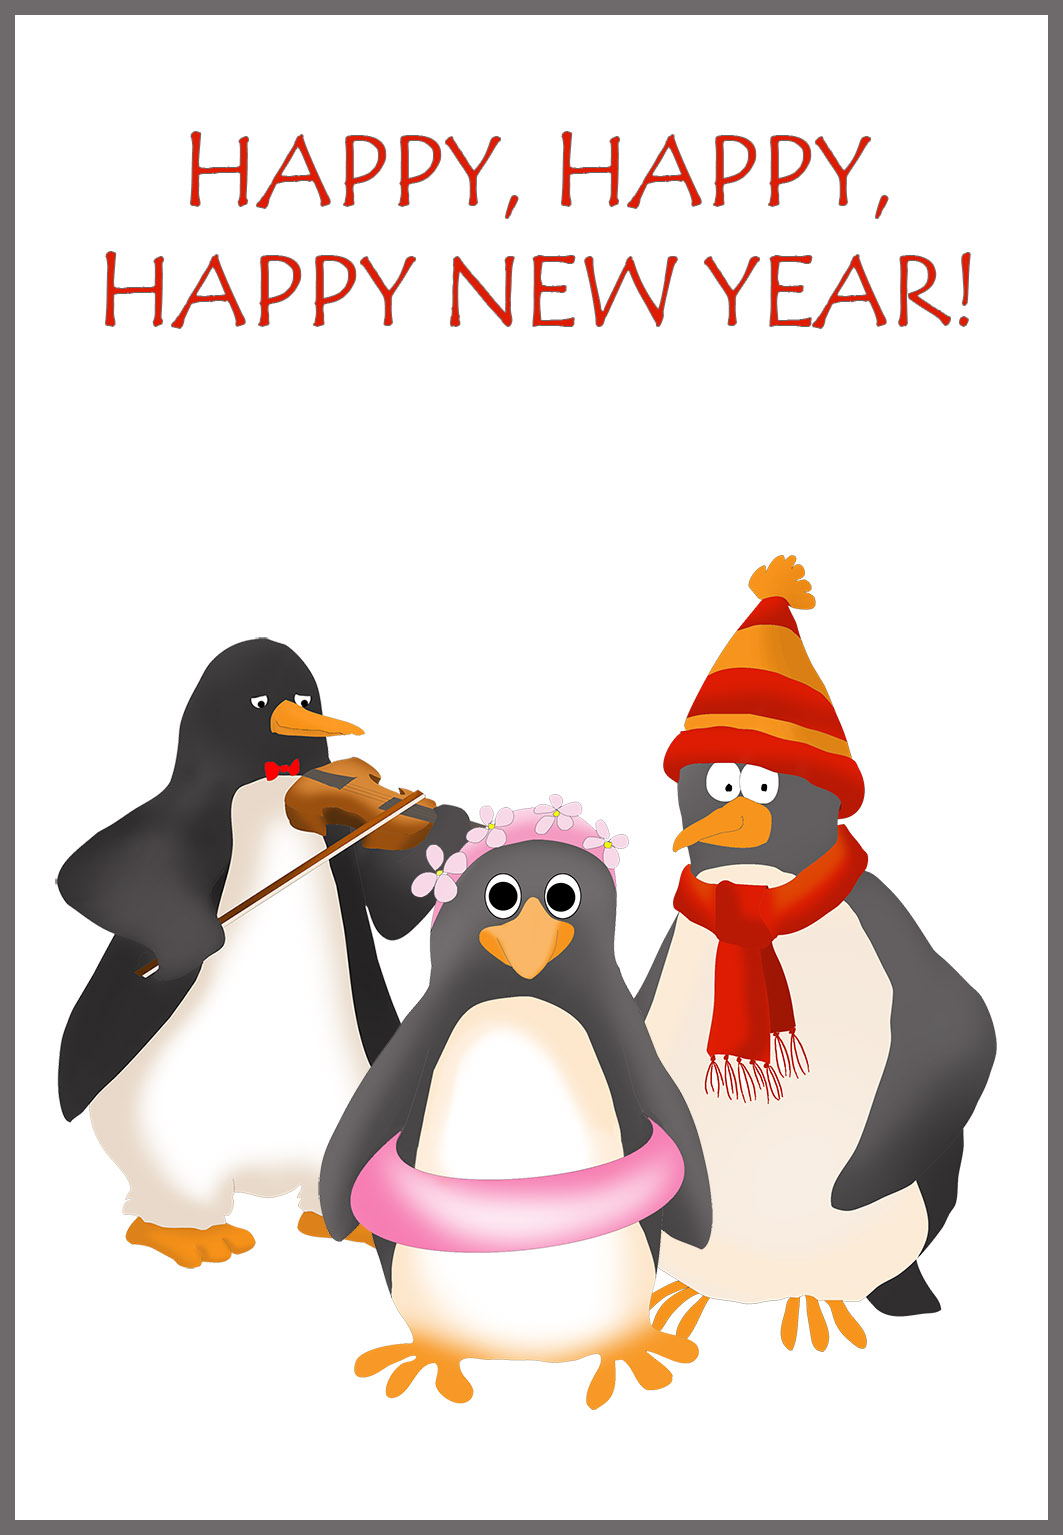 penguins wishing you a happy New Year